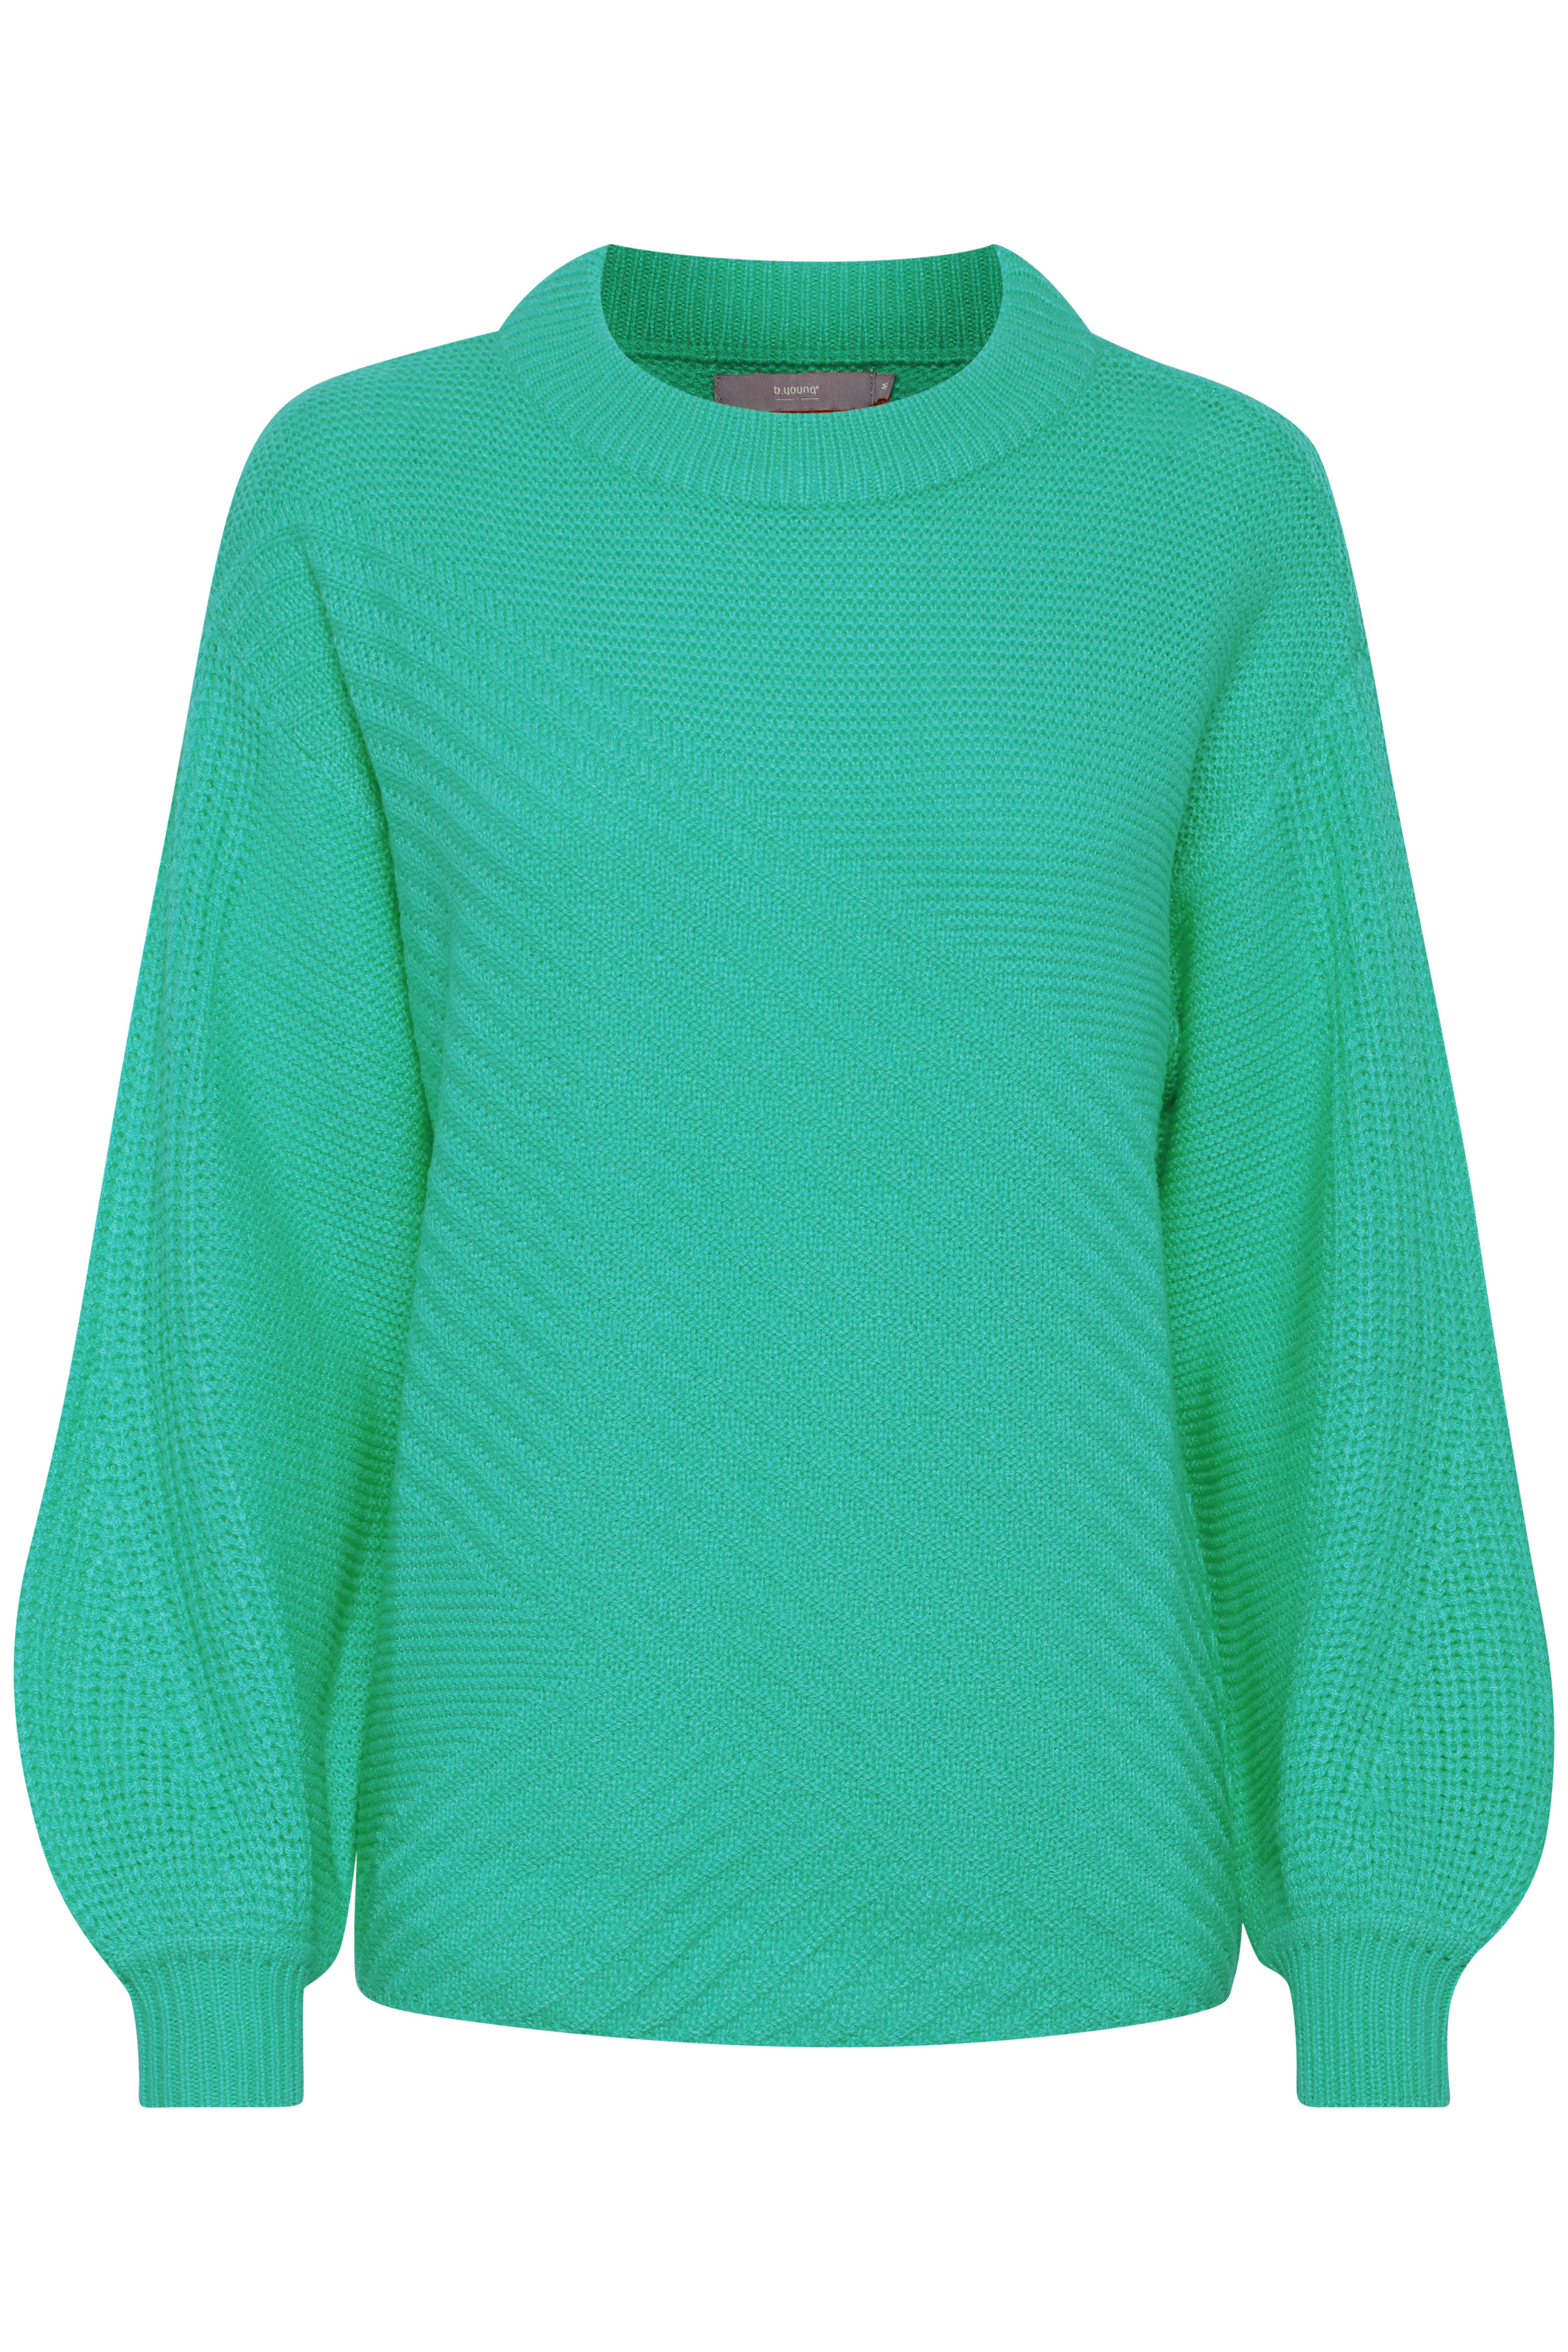 Fresh Green Knitted pullover from b.young – Buy Fresh Green Knitted pullover from size XS-XXL here